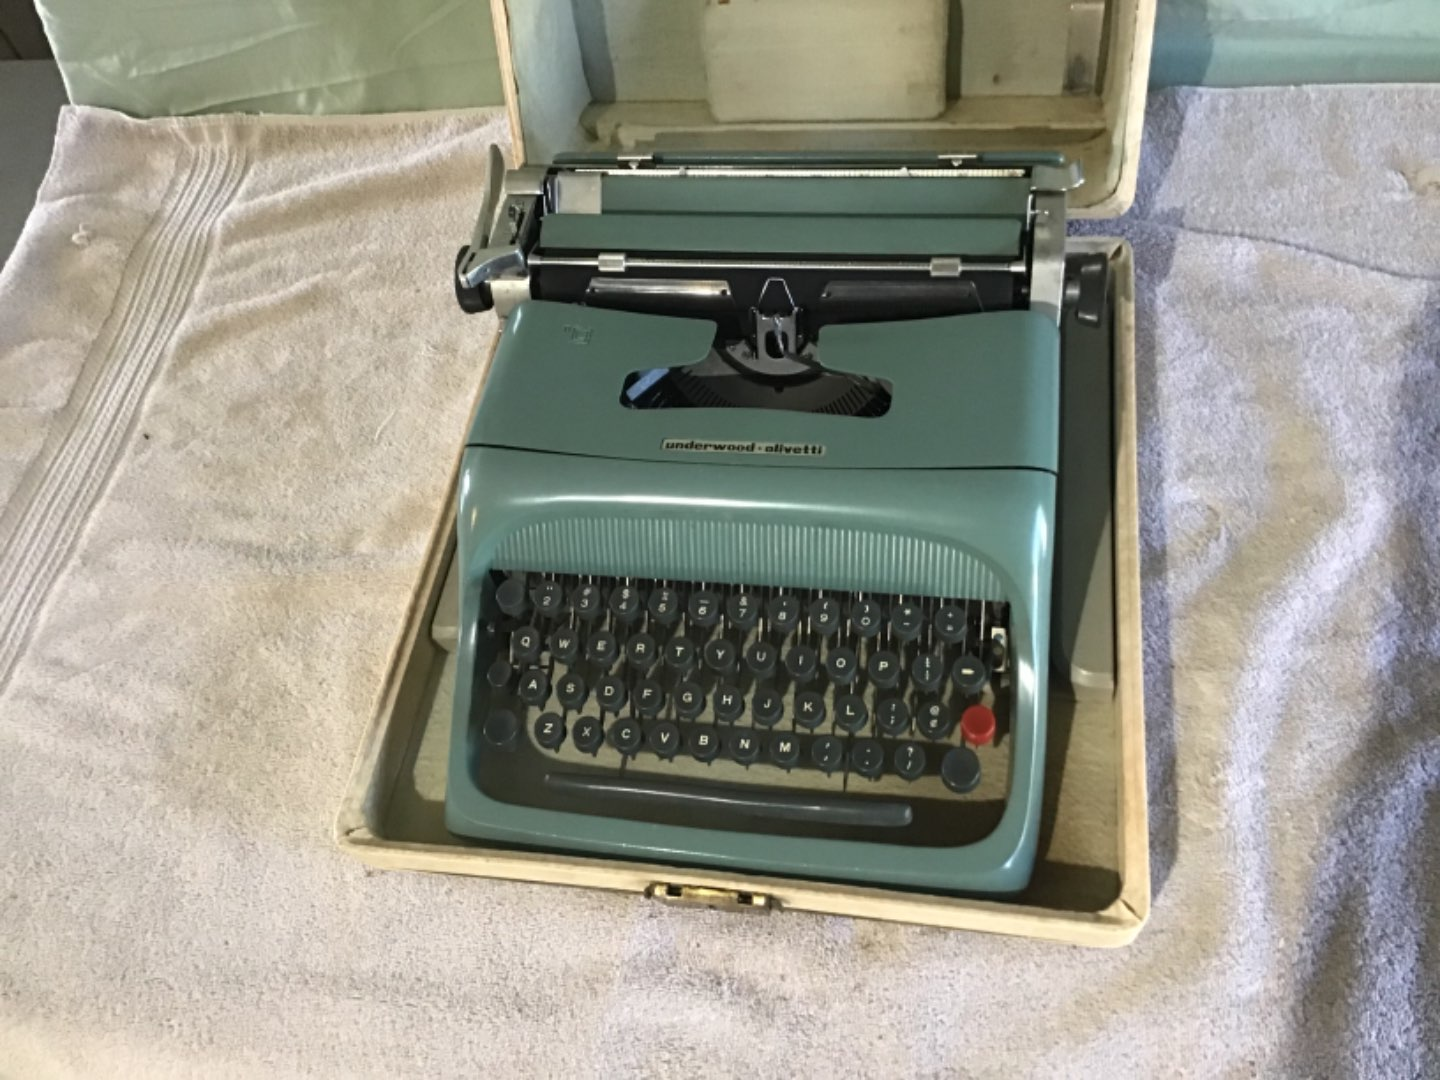 Lot # 216 Vintage Underwood - Olivetti Portable Typewriter in Original Case - Very Clean - VG Condition